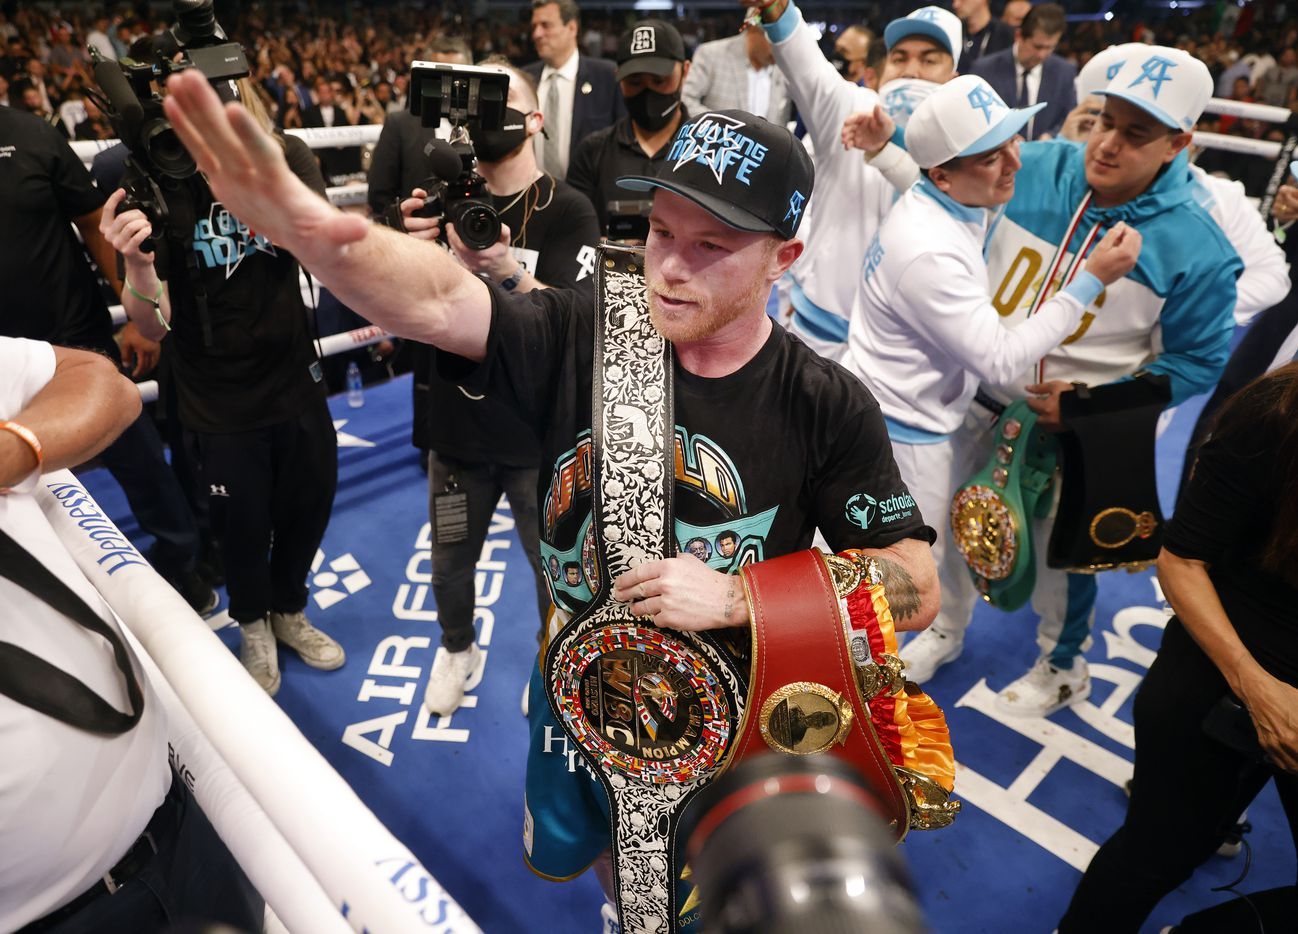 Boxers Canelo Alvarez celebrates with his belts after defeating Billy Joe Saunders in the eighth round of their super middleweight title fight at AT&T Stadium in Arlington, Saturday, May 8, 2021.  Sauders couldn't go on because he unsustained an eye injury and couldn't see. (Tom Fox/The Dallas Morning News)